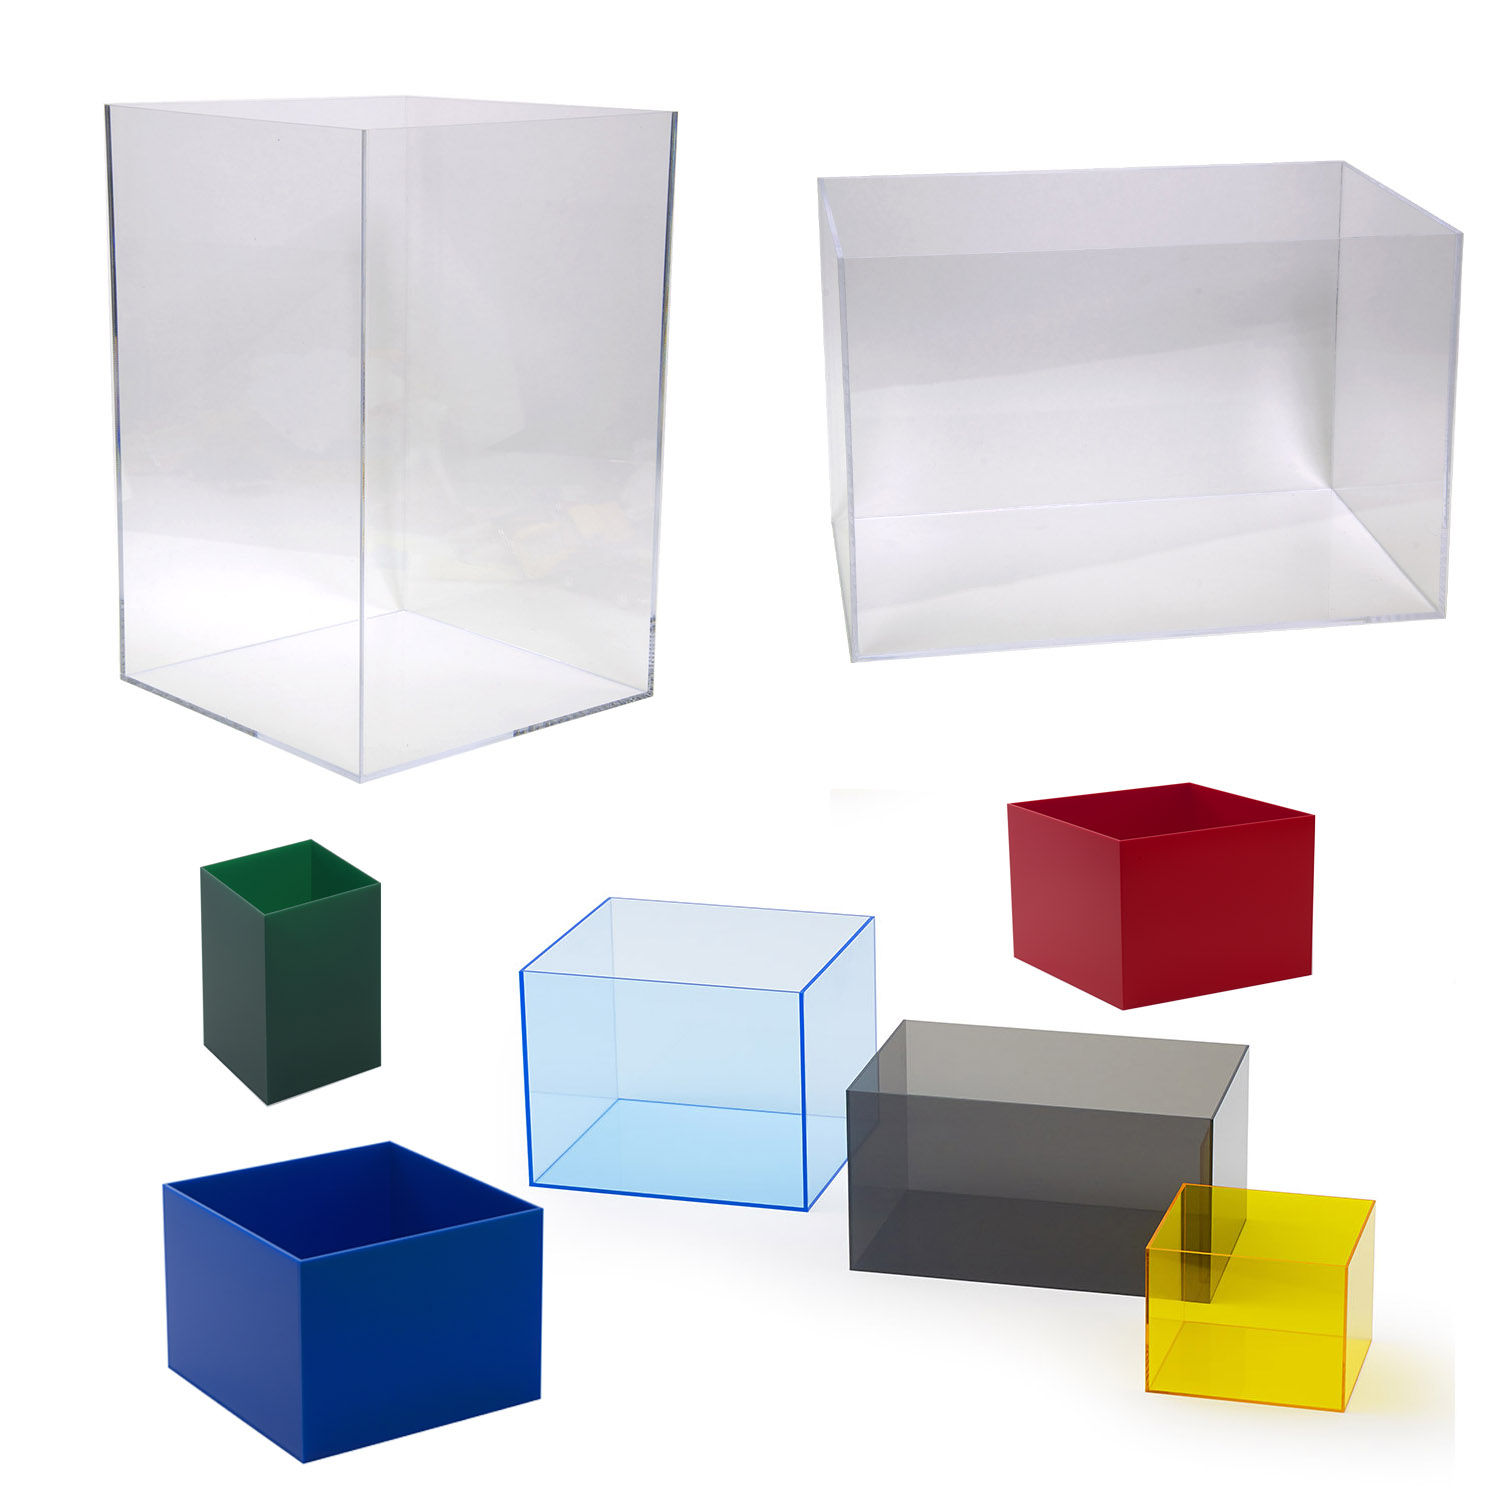 acrylic display cases acrylic display boxes plastic display boxes. Black Bedroom Furniture Sets. Home Design Ideas